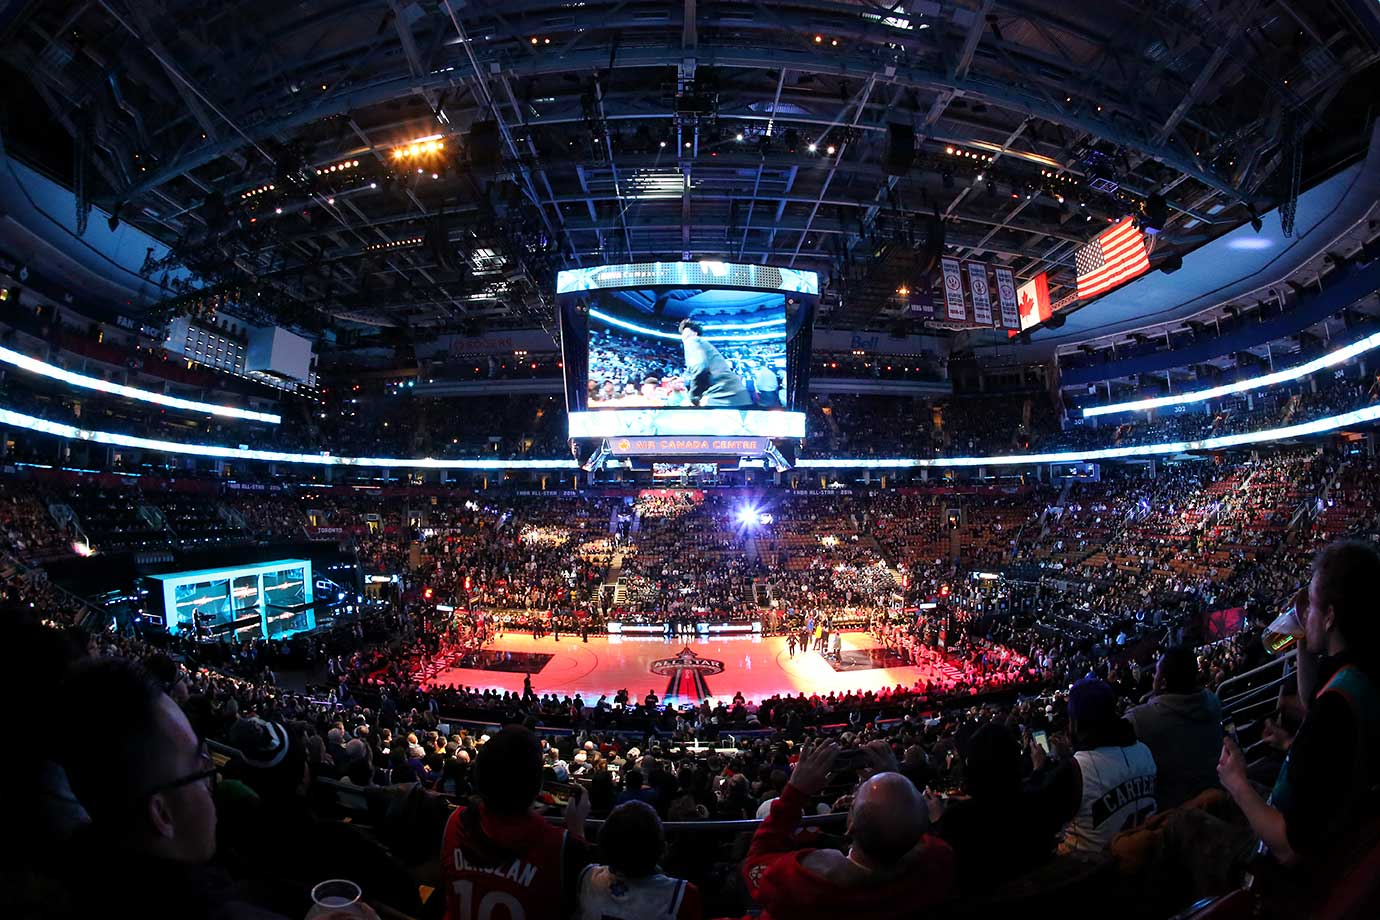 A general view of the BBVA Compass Rising Stars Challenge as part of NBA All-Star Weekend.